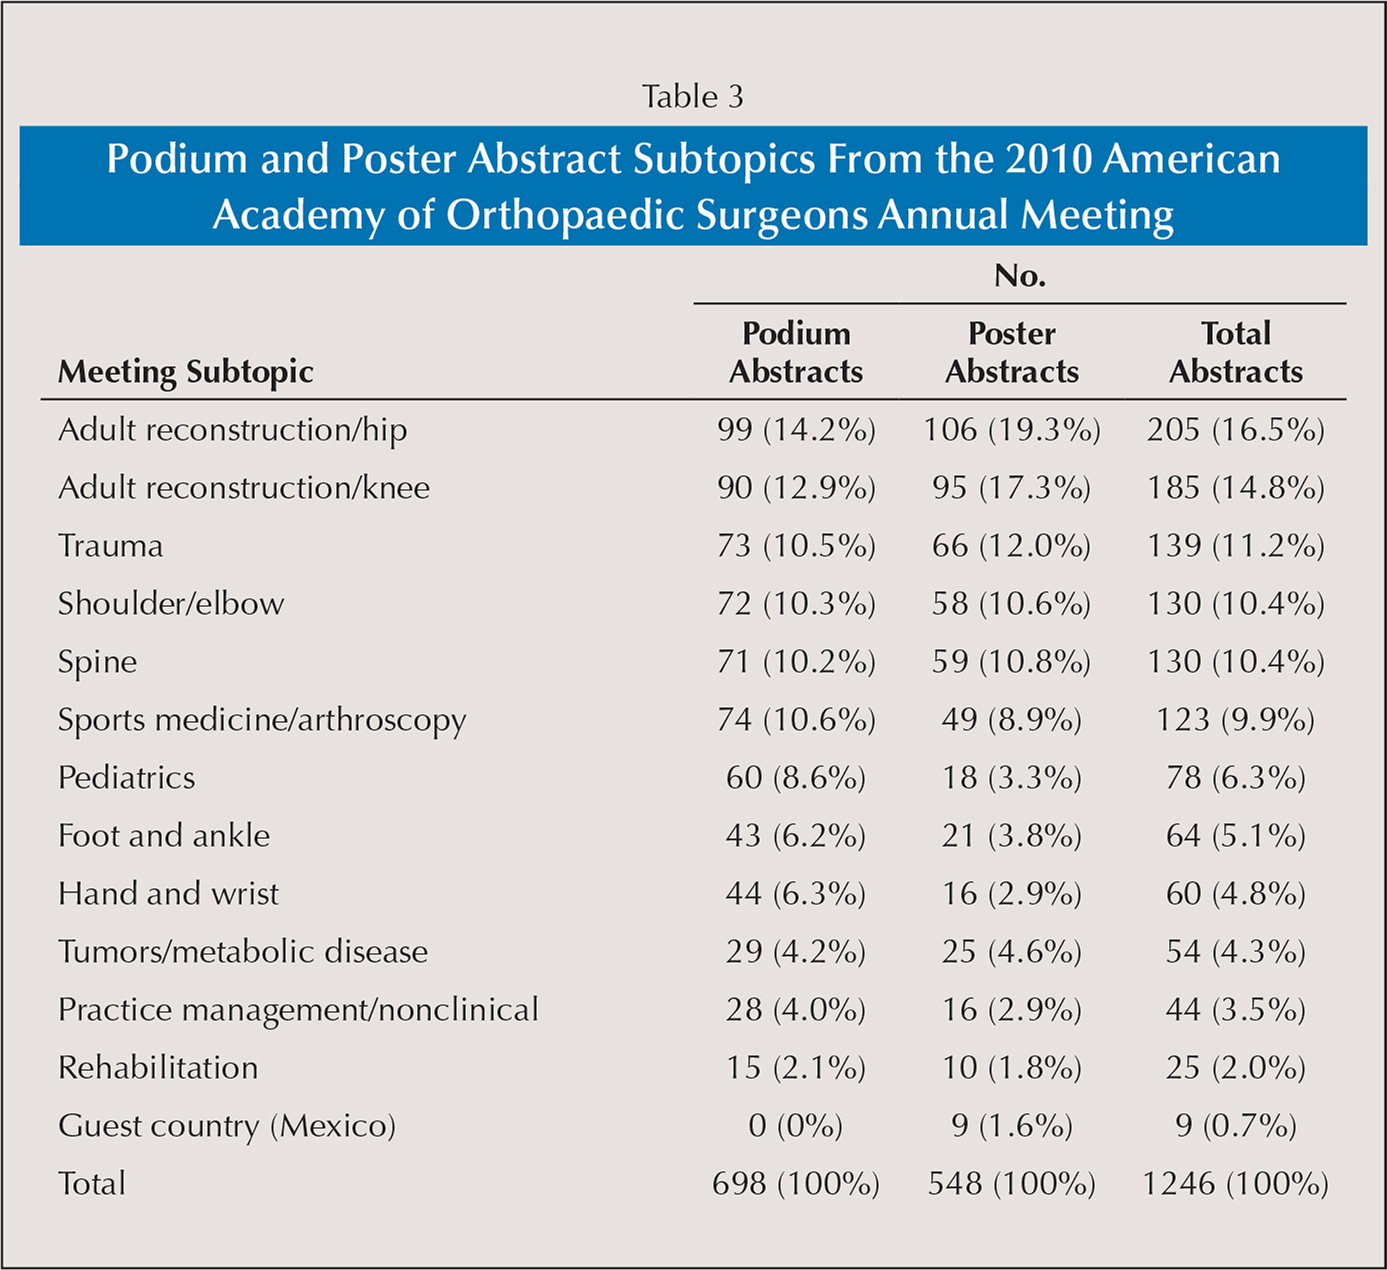 Podium and Poster Abstract Subtopics From the 2010 American Academy of Orthopaedic Surgeons Annual Meeting